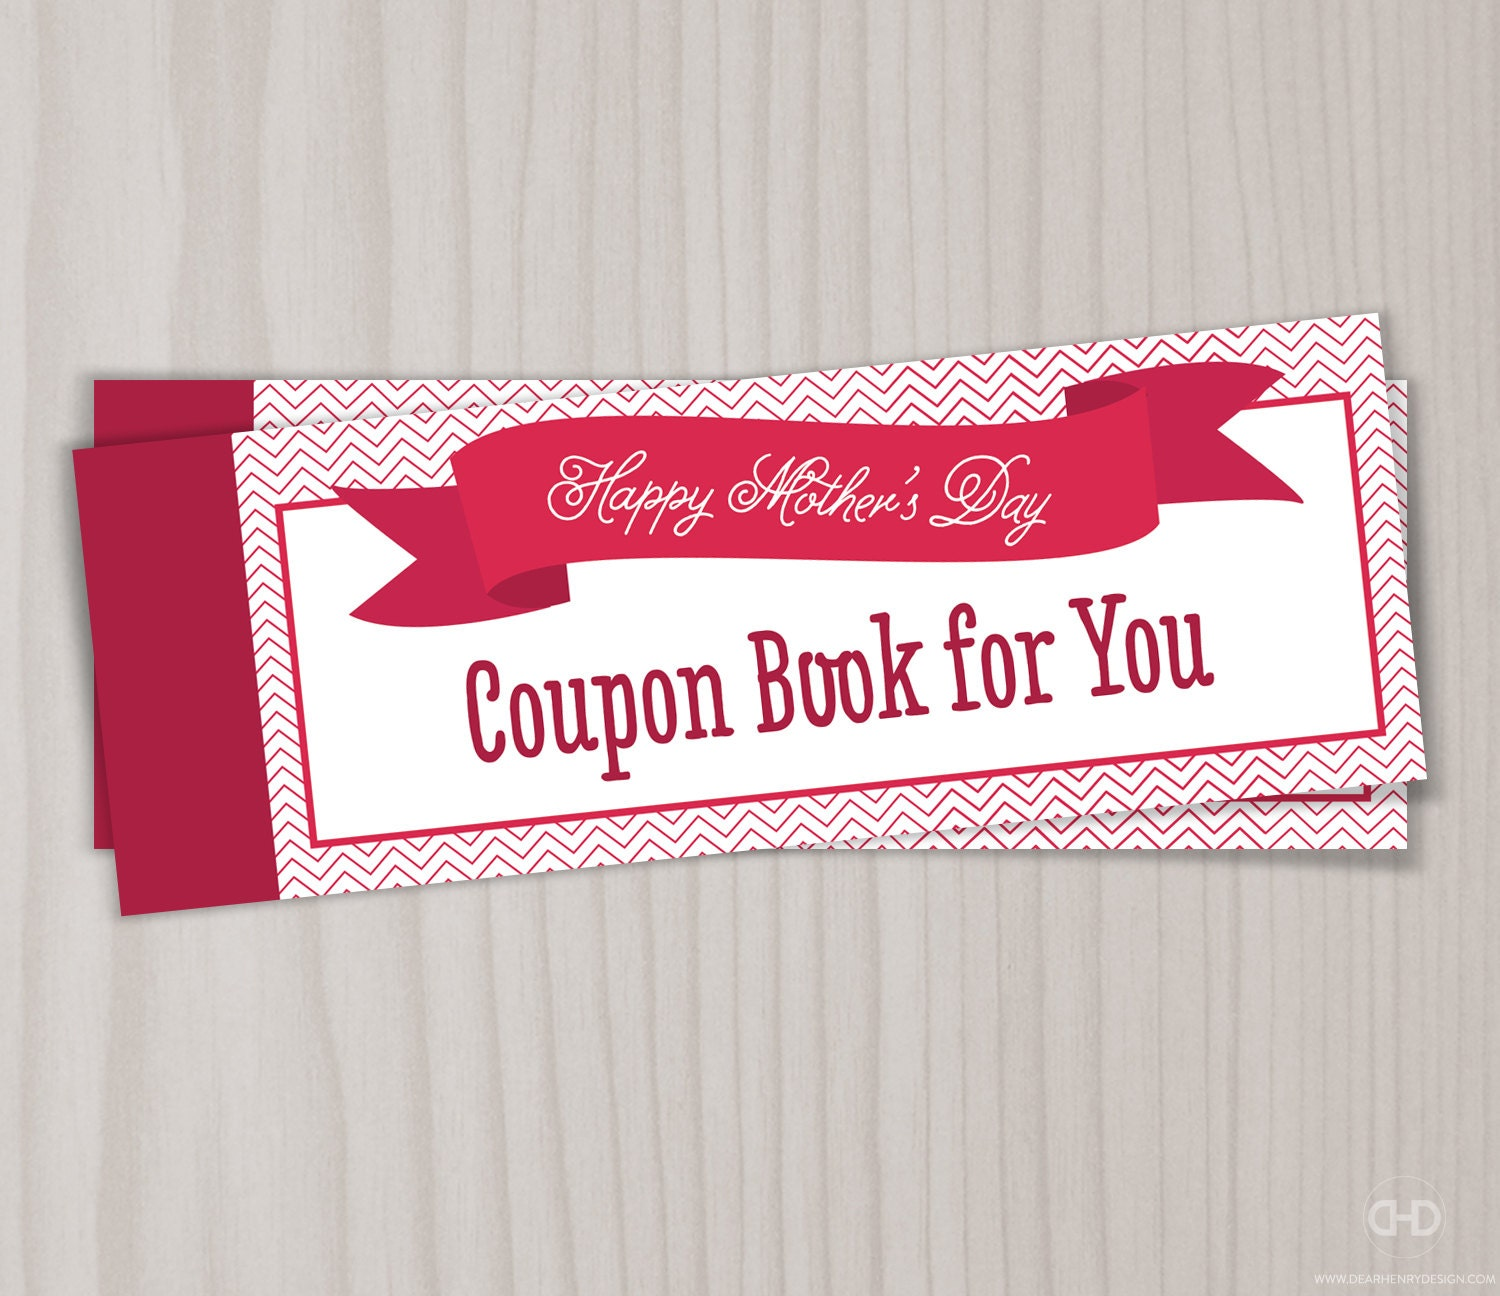 diy coupon book mothers day love coupon book mom coupons mother s day for wife grandmother from kids or grandchildren gift present chevron blank